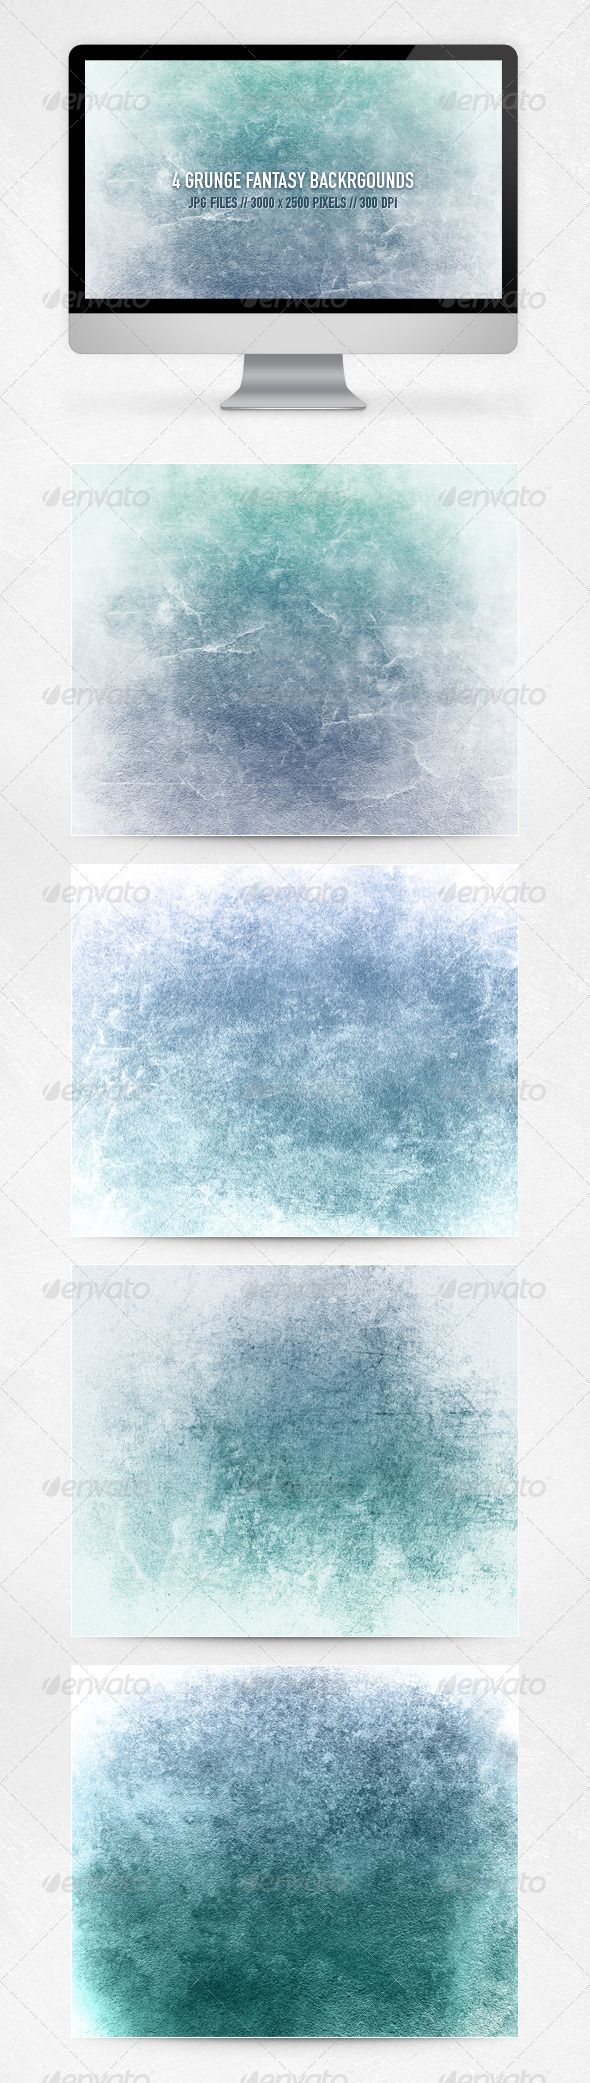 Grunge Fantasy Backgrounds - Backgrounds Graphics